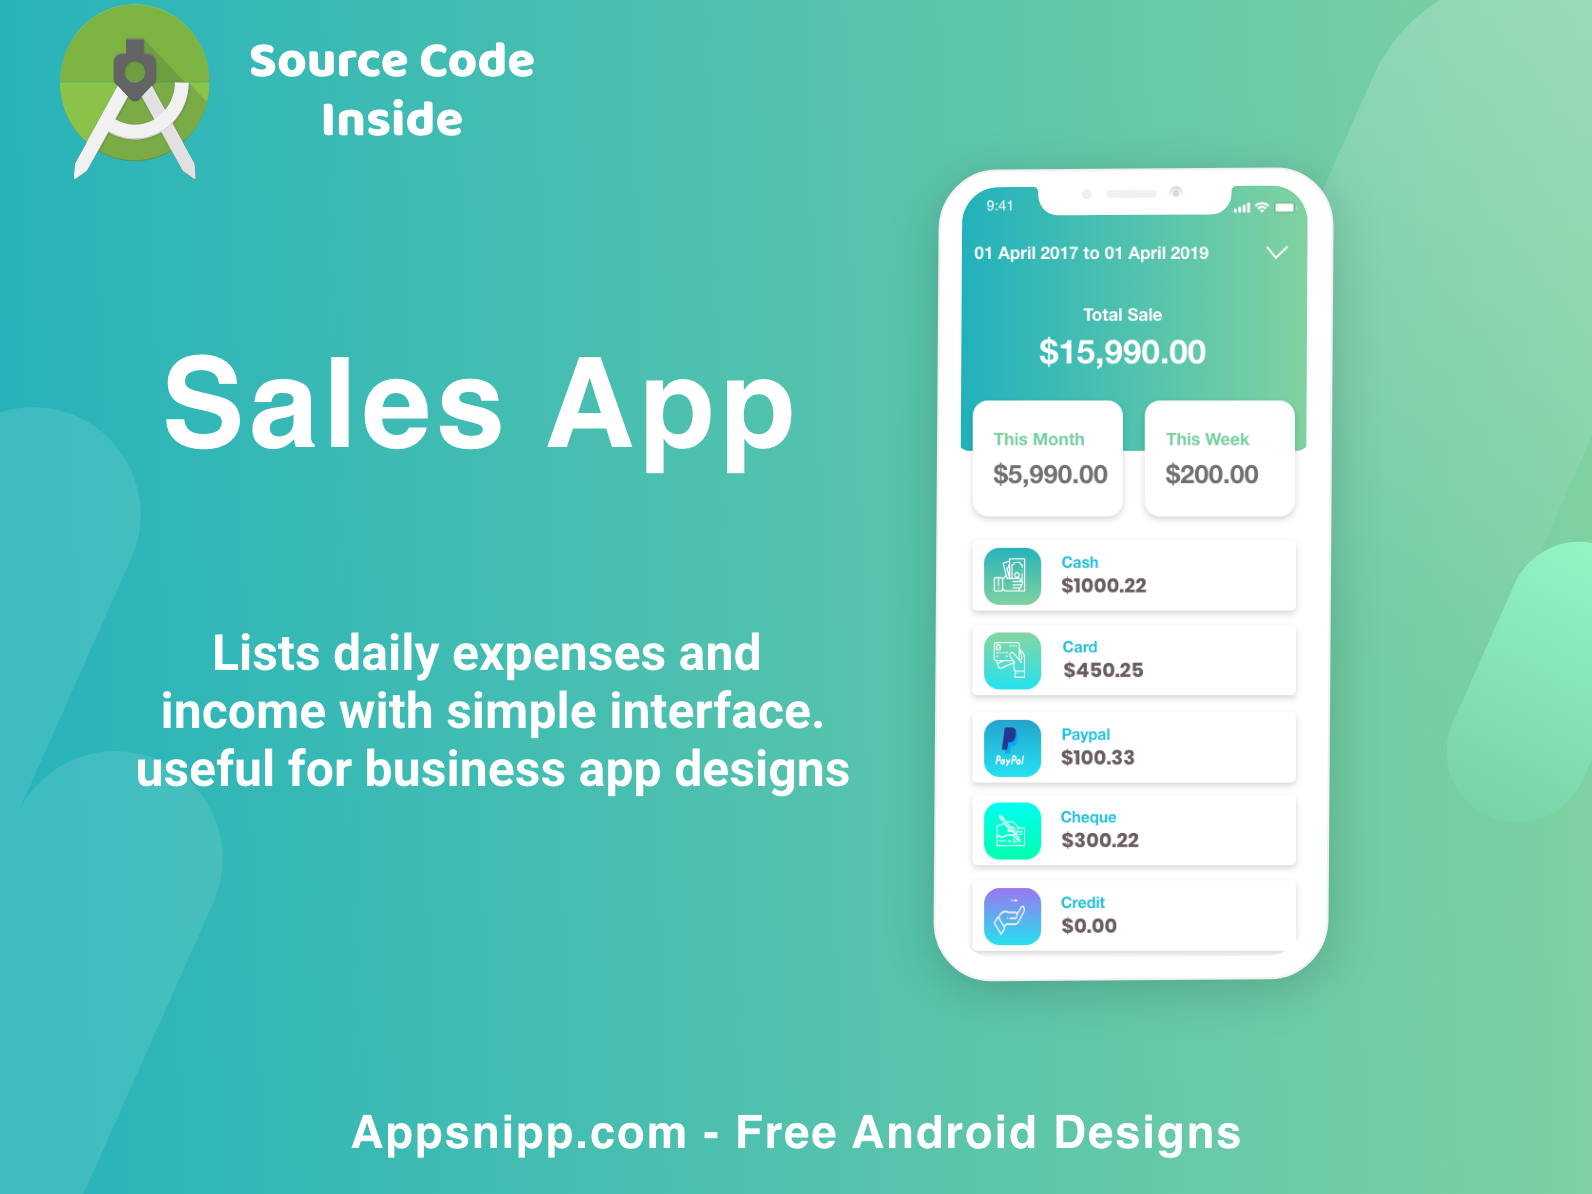 Realtime sales app ui design with source code for android by Kapil